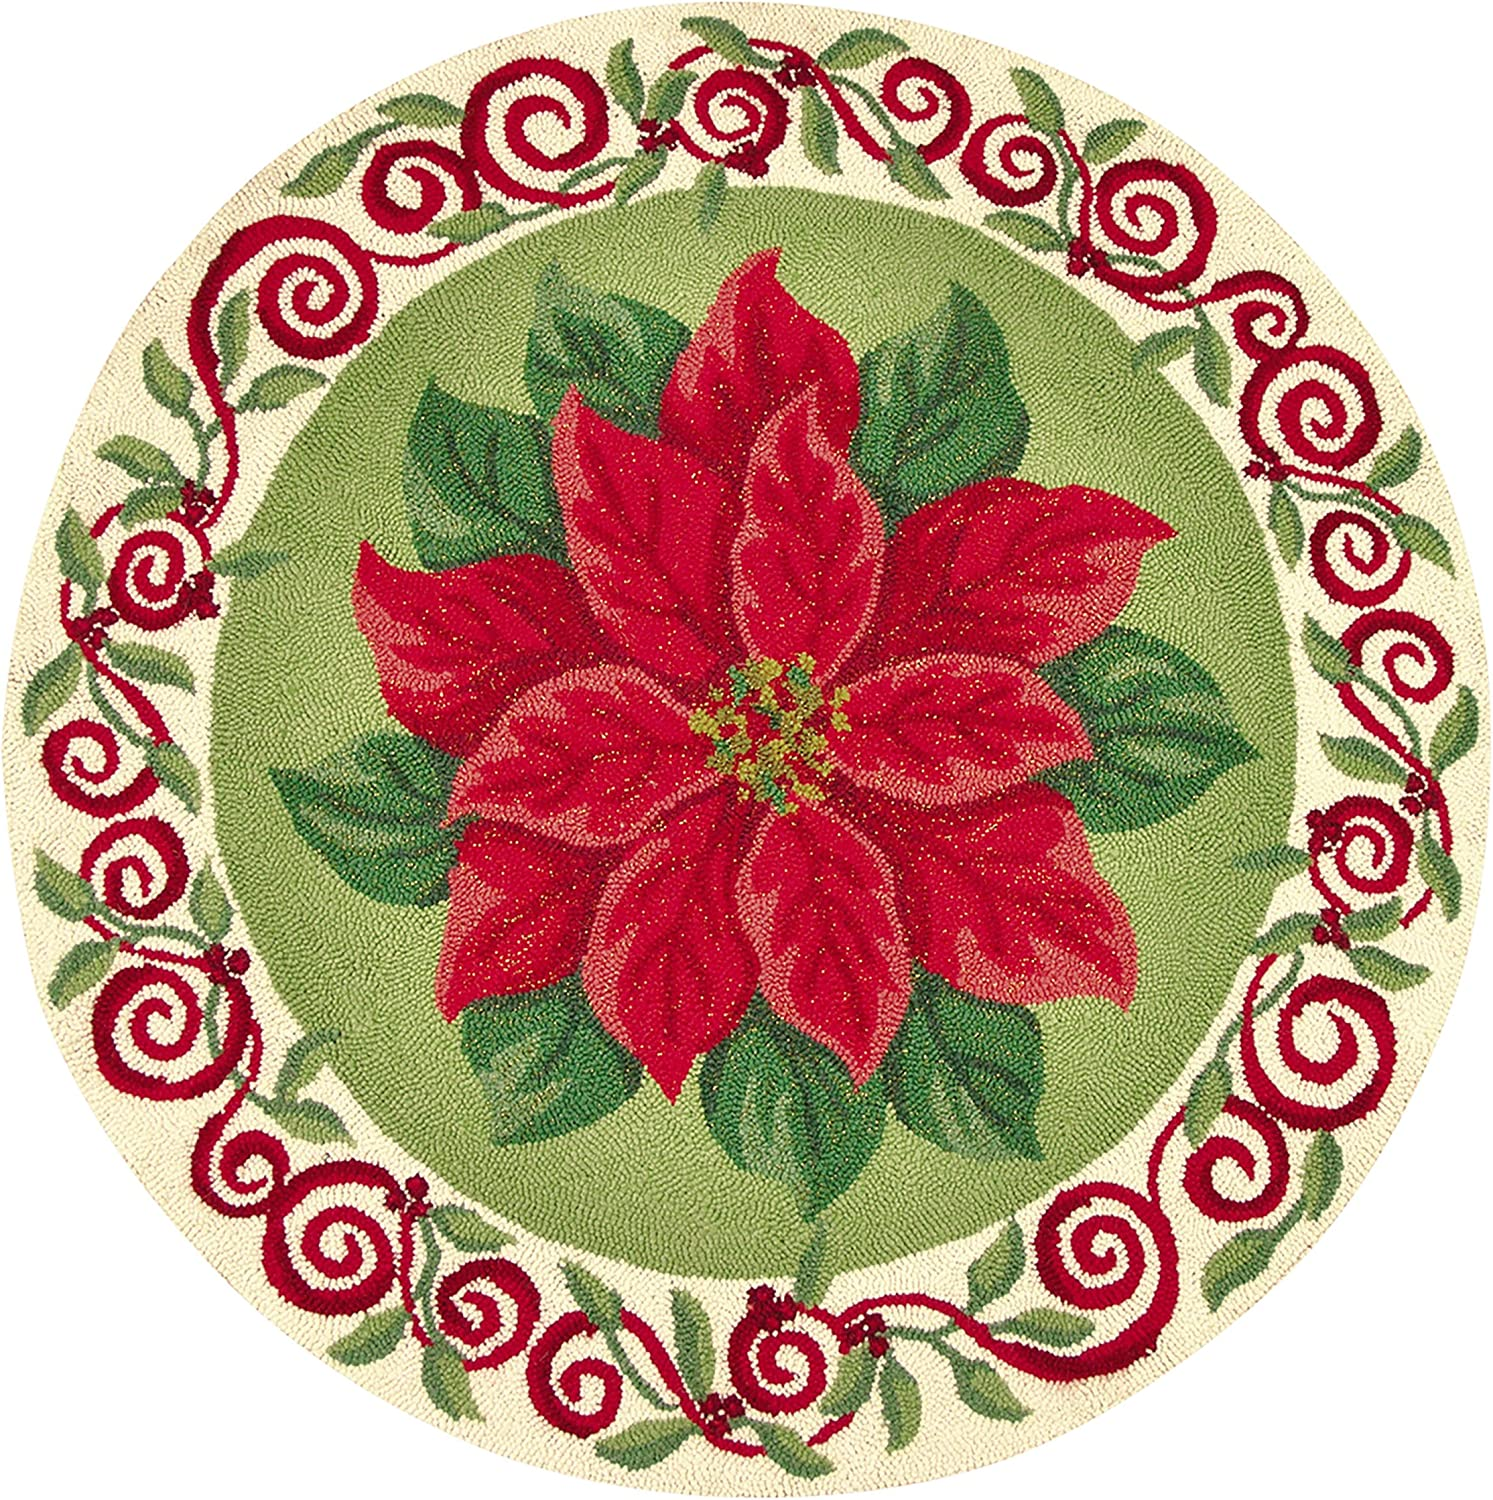 C&F Home 3 Feet Round Hooked Rug, Poinsettia